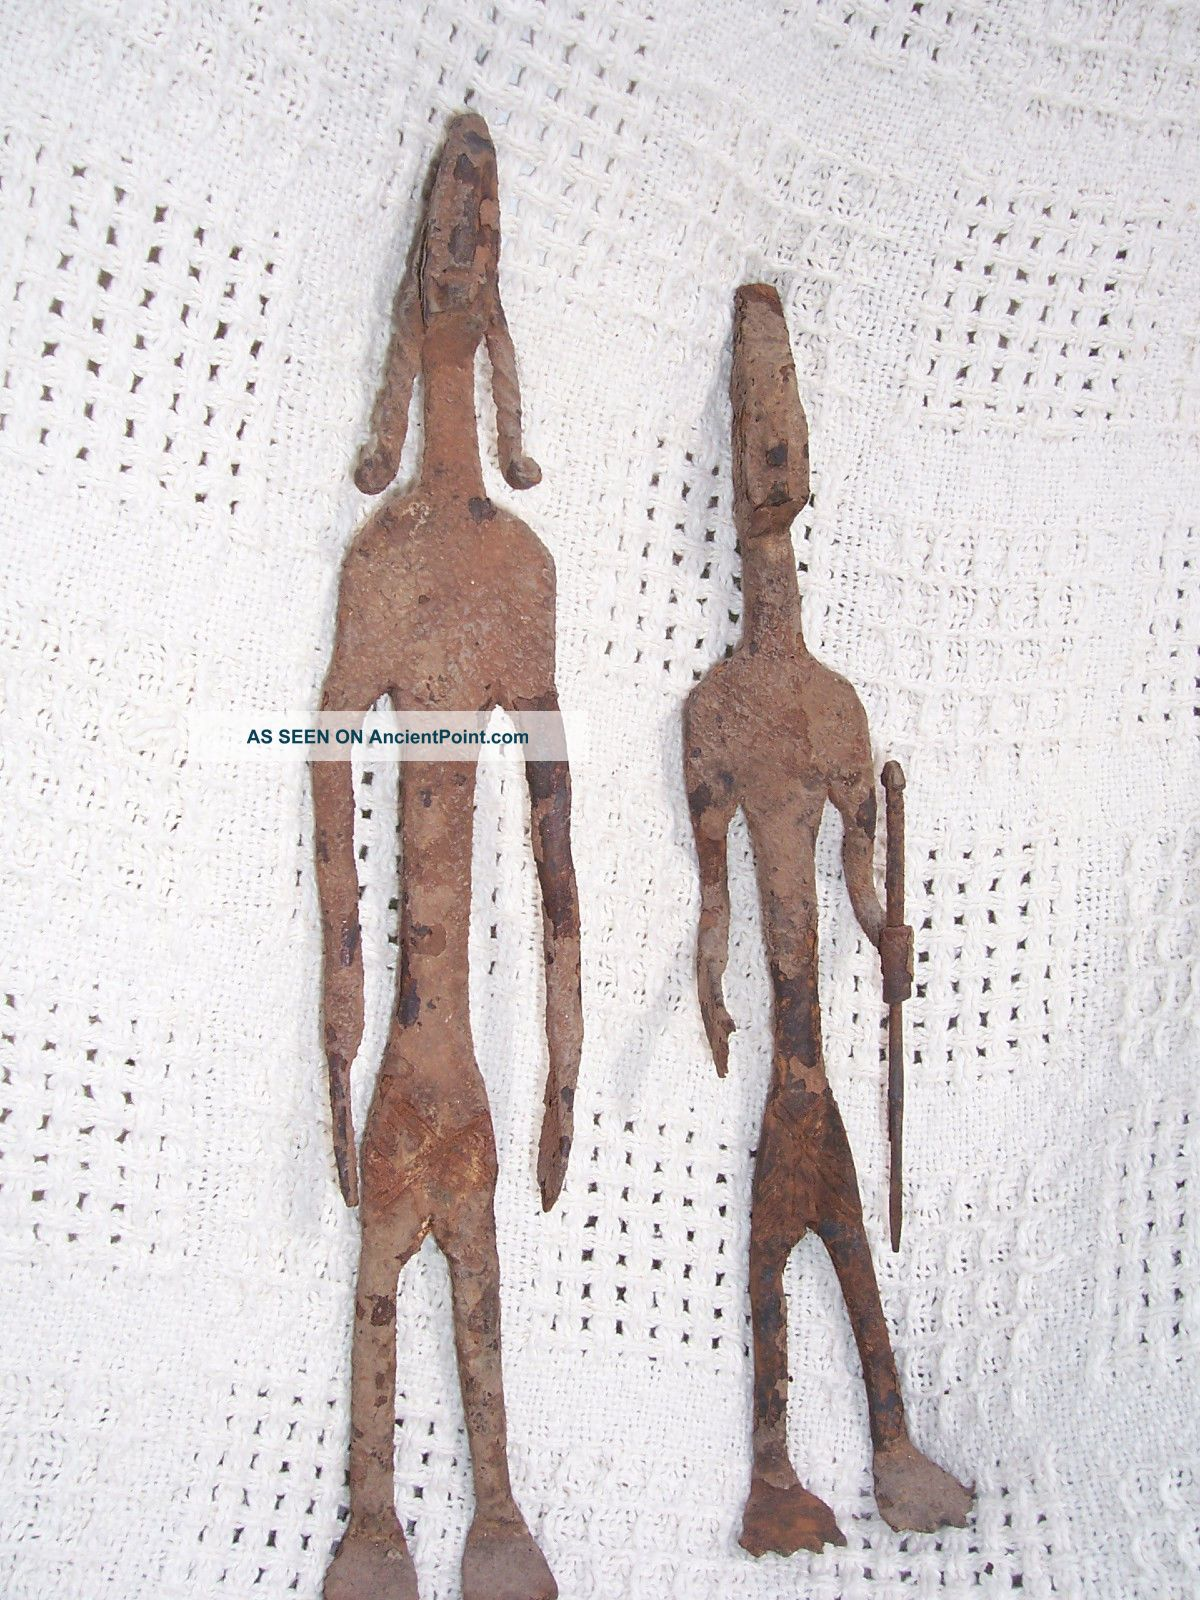 African Dogon Forged Iron Figures One Holding Spear One With Braids Other photo